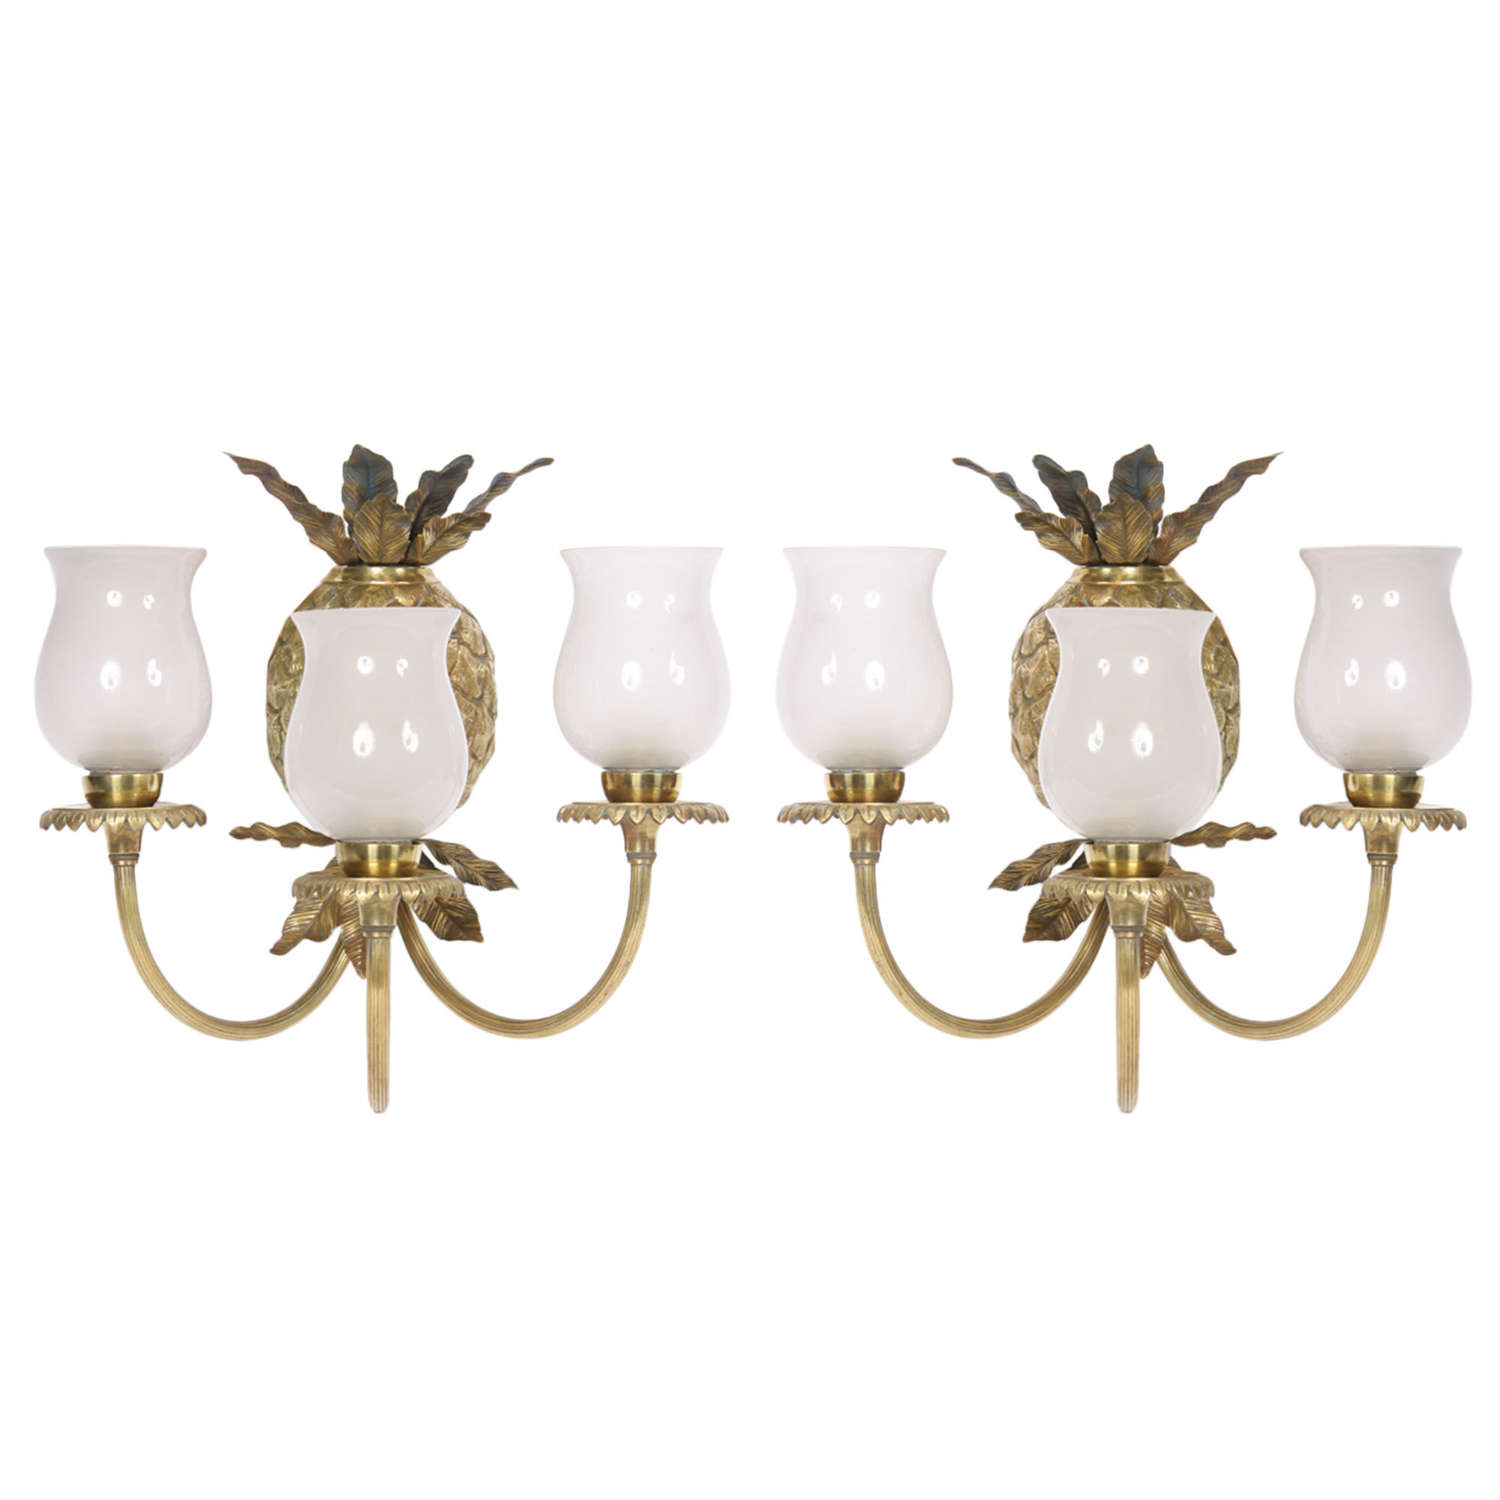 Pair of Glass & Brass Pineapple Wall Lights, French 1940s